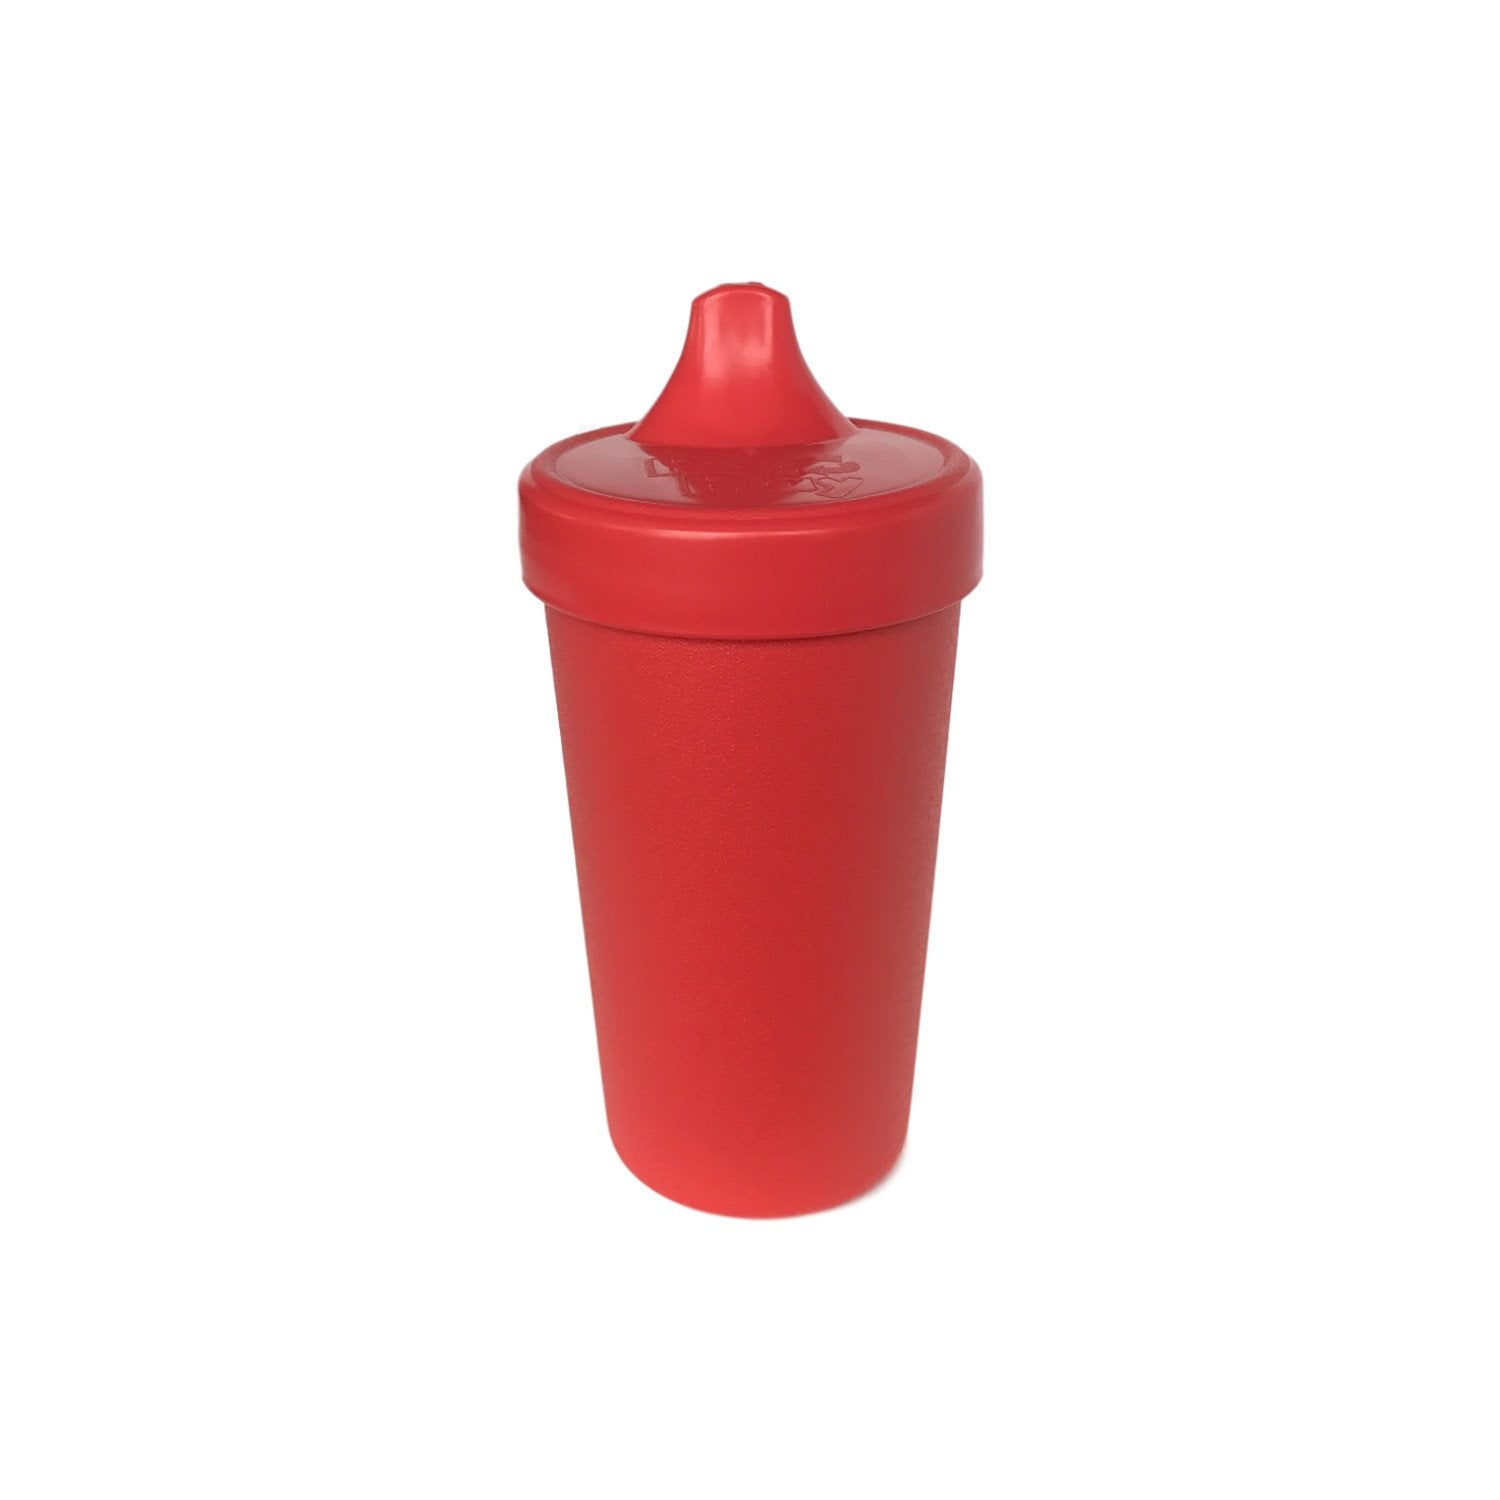 Replay Sippy Cup Replay Sippy Cups Red at Little Earth Nest Eco Shop